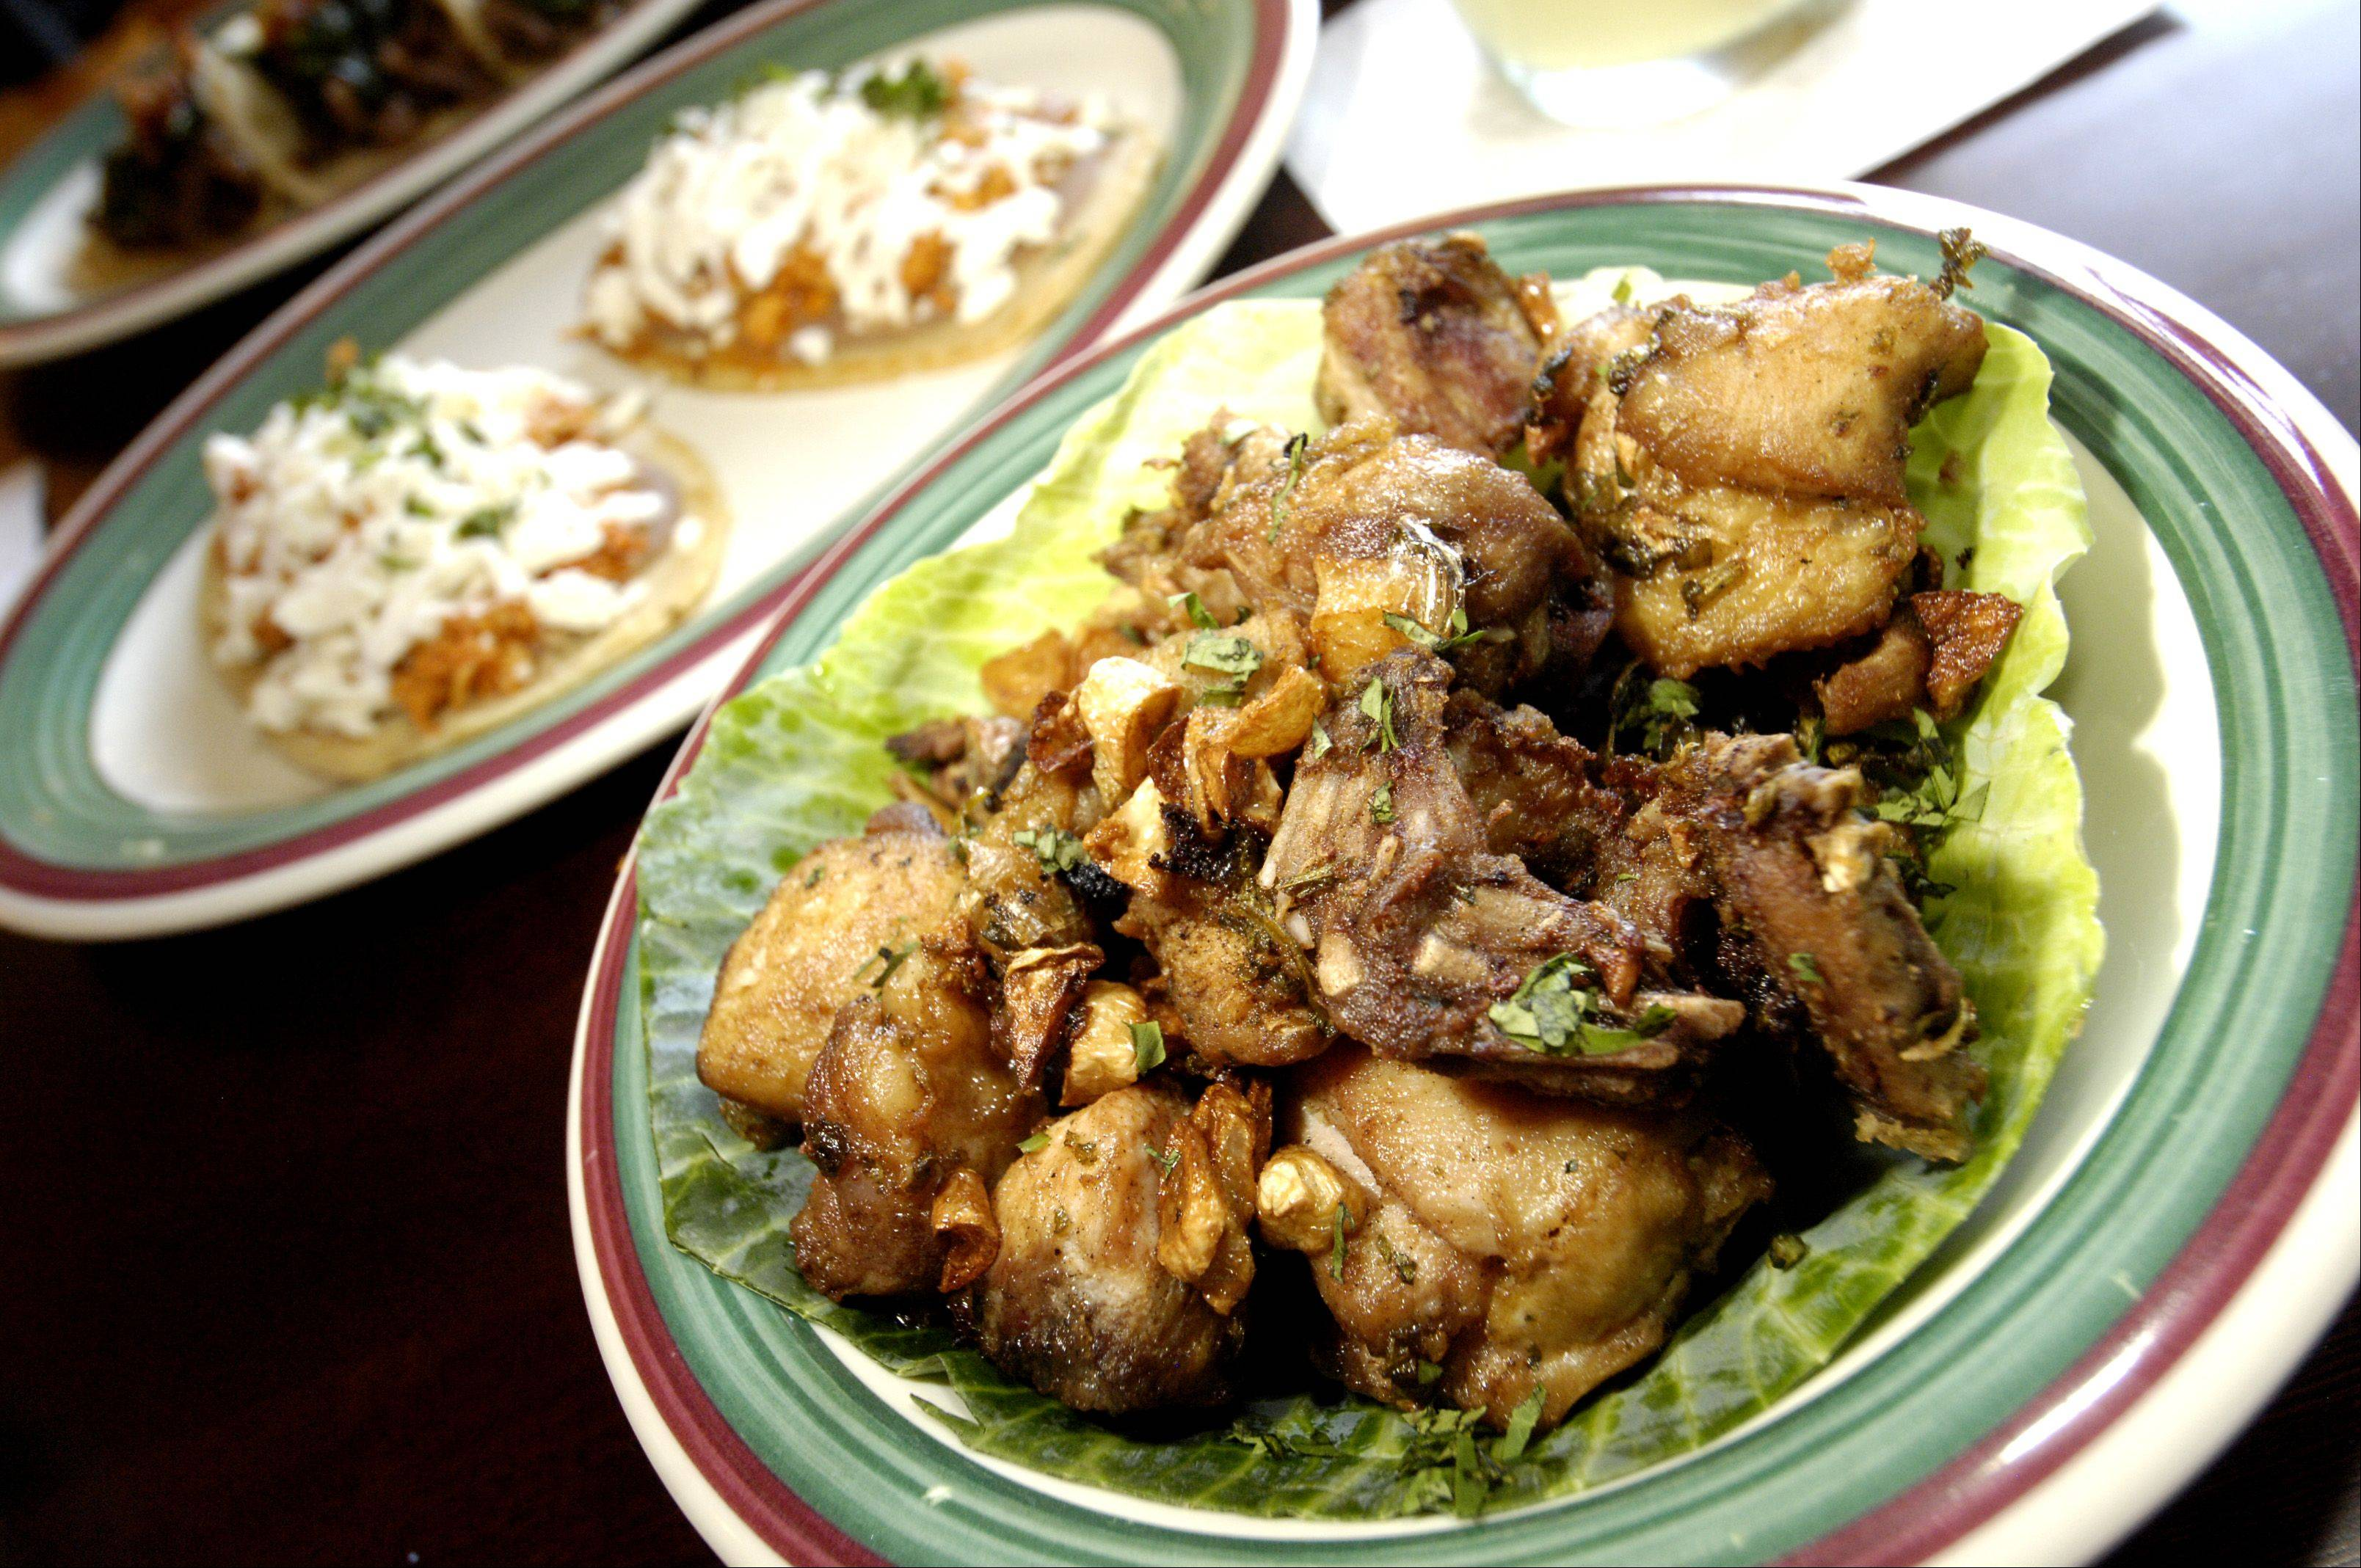 Frango a passarinho is one of the shareable plates available at Changarro, a Mexican-Brazilian restaurant in West Chicago.